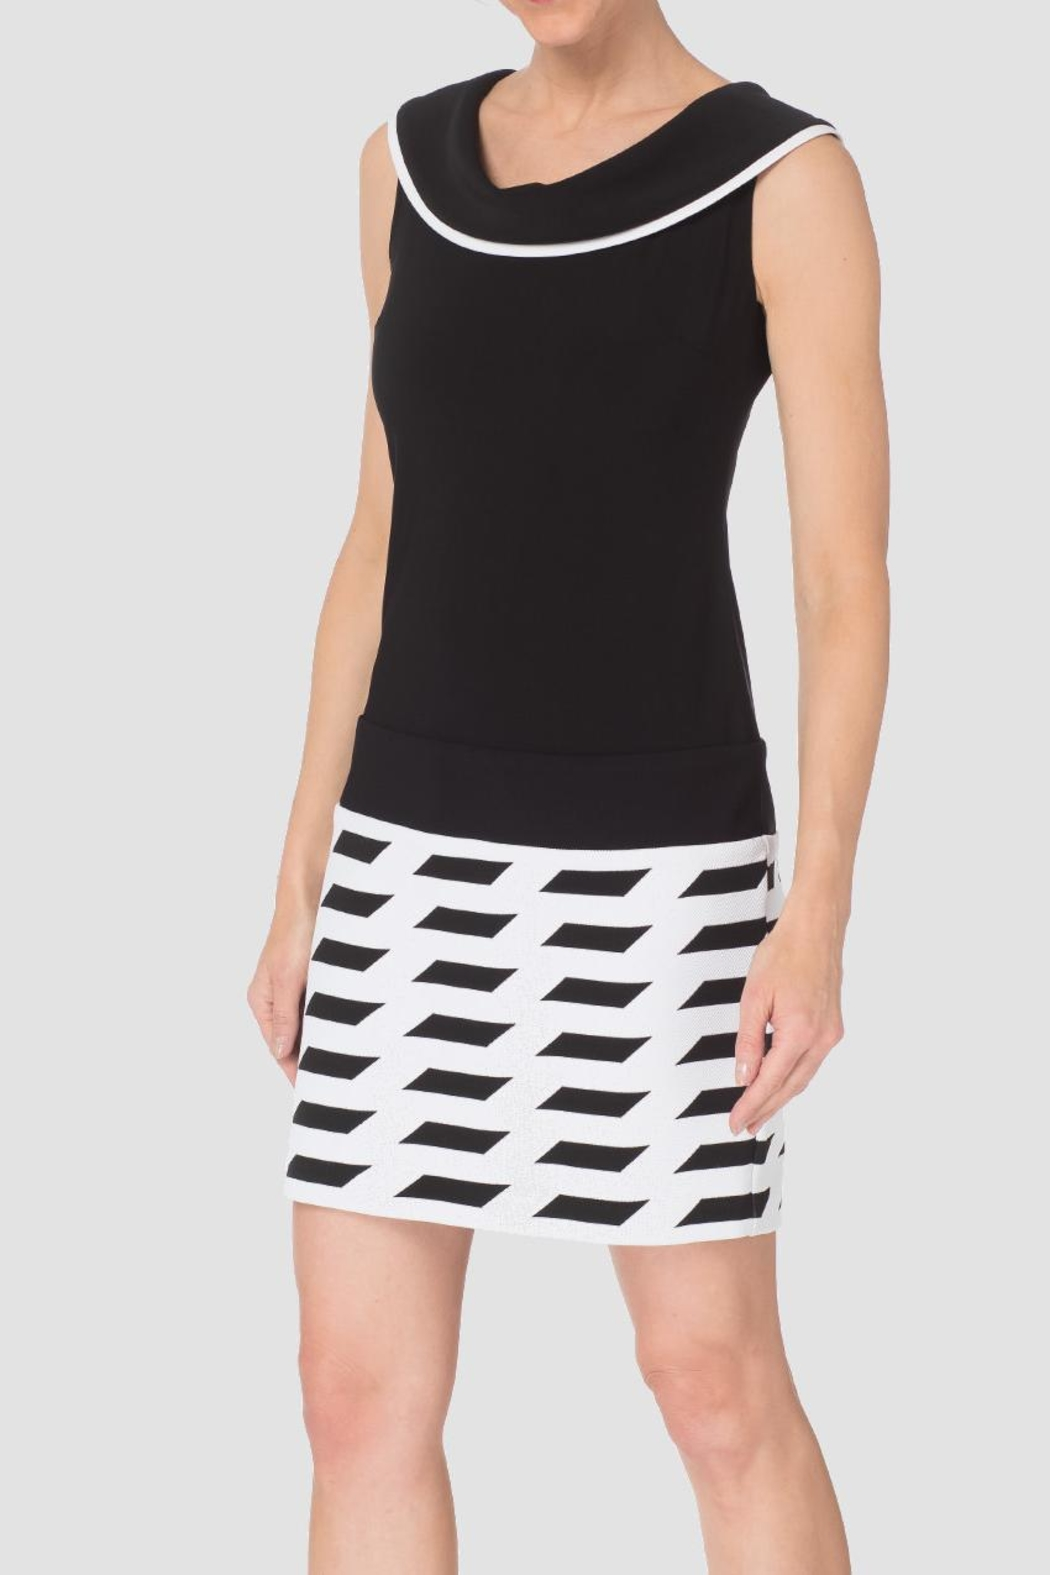 Joseph Ribkoff Black/white Sheath Dress - Main Image